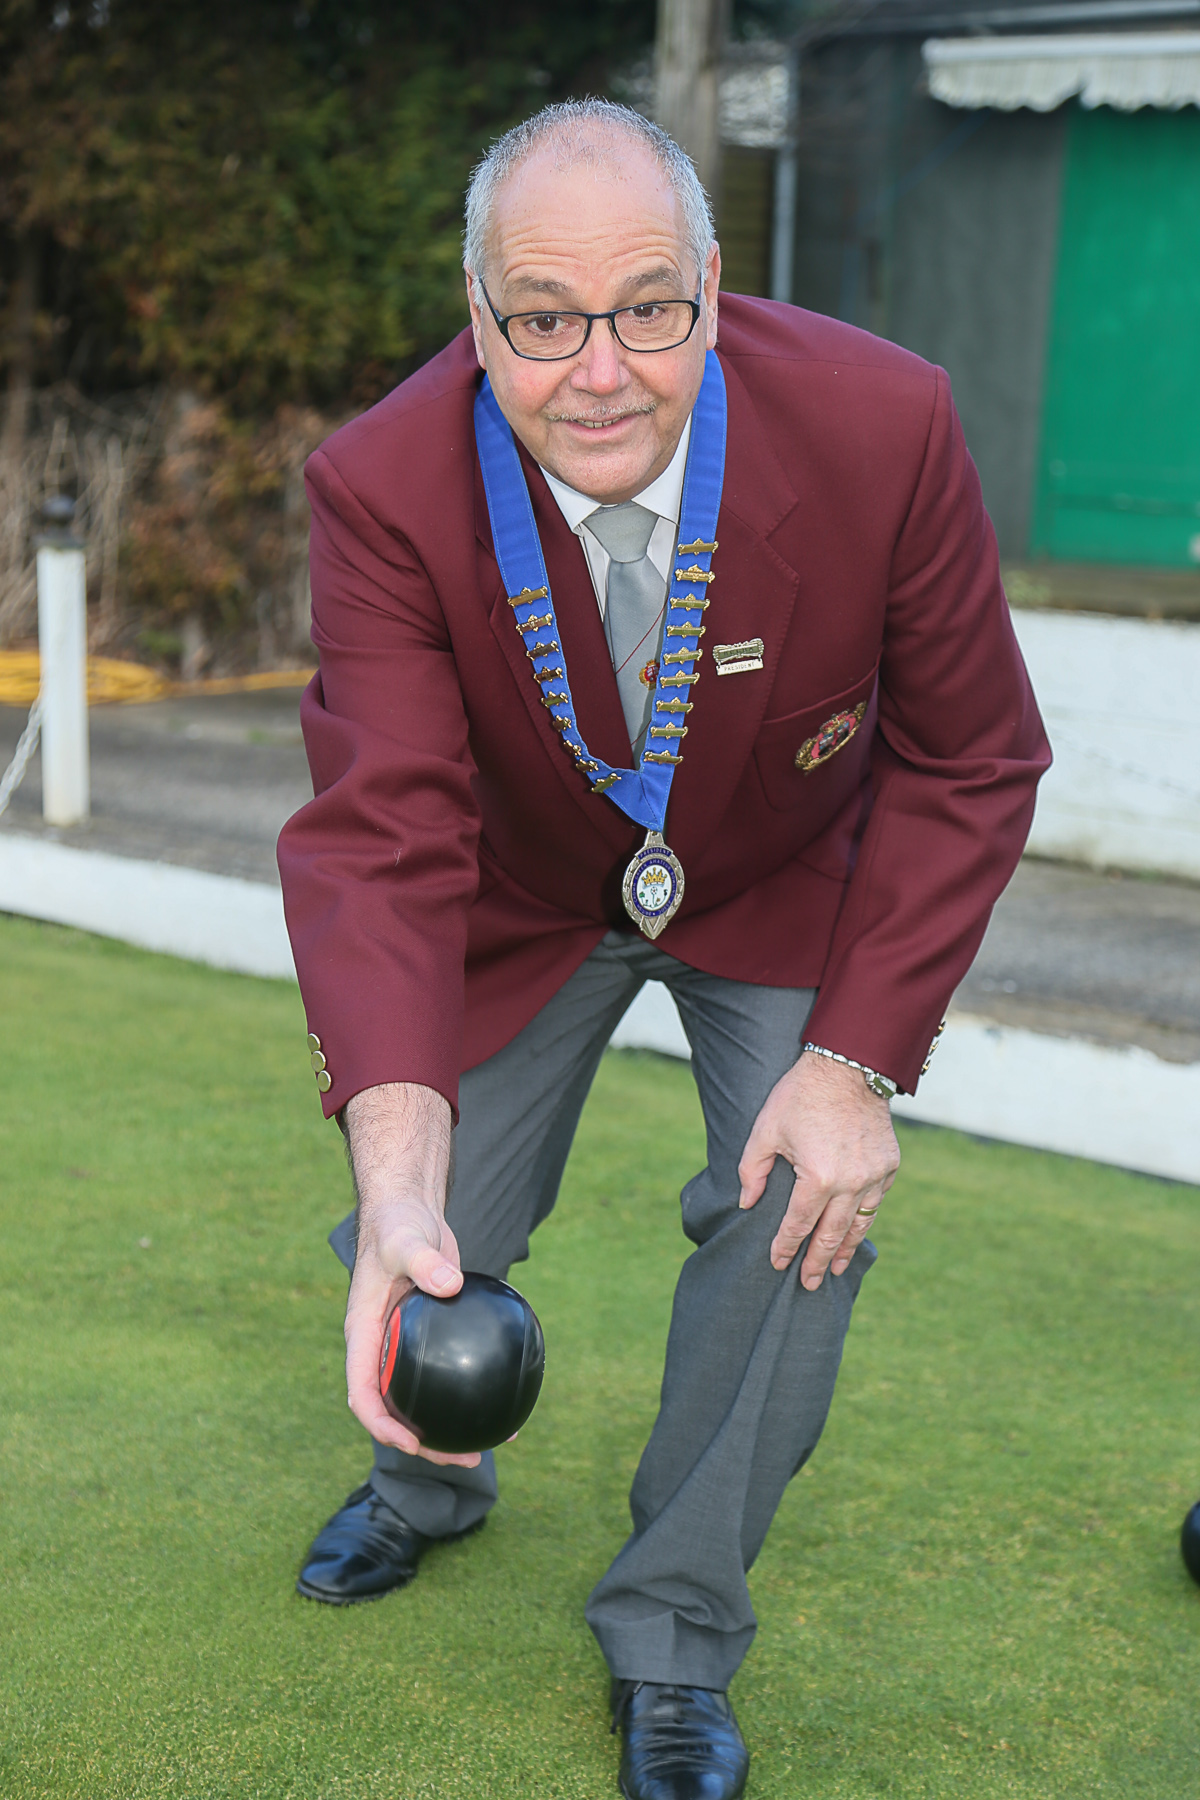 Chris Hasselby is relishing his role as president of the Britsh Crown Green Bowling Association